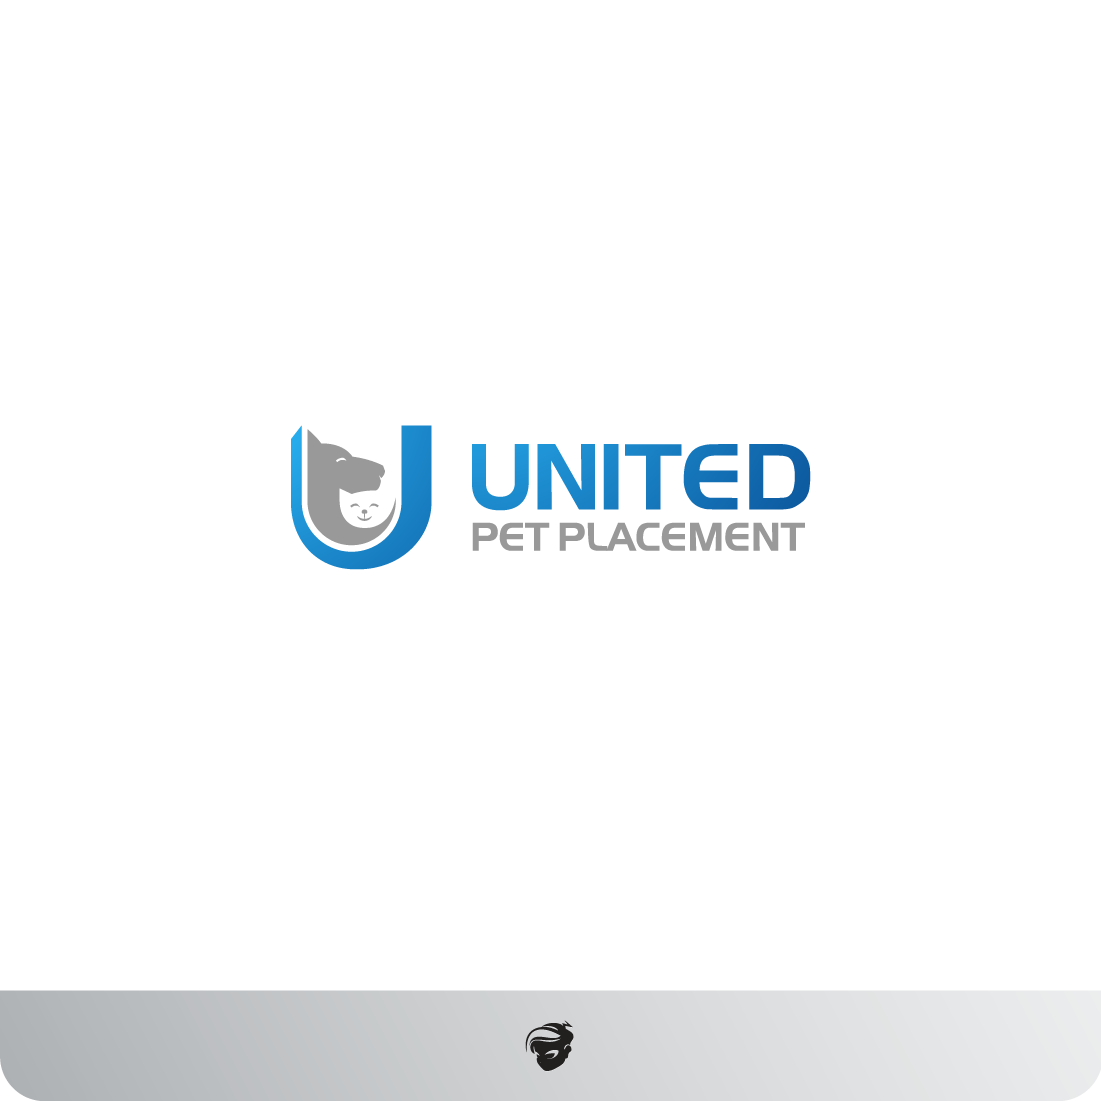 Logo Design by zesthar - Entry No. 43 in the Logo Design Contest Artistic Logo Design for united pet placement.